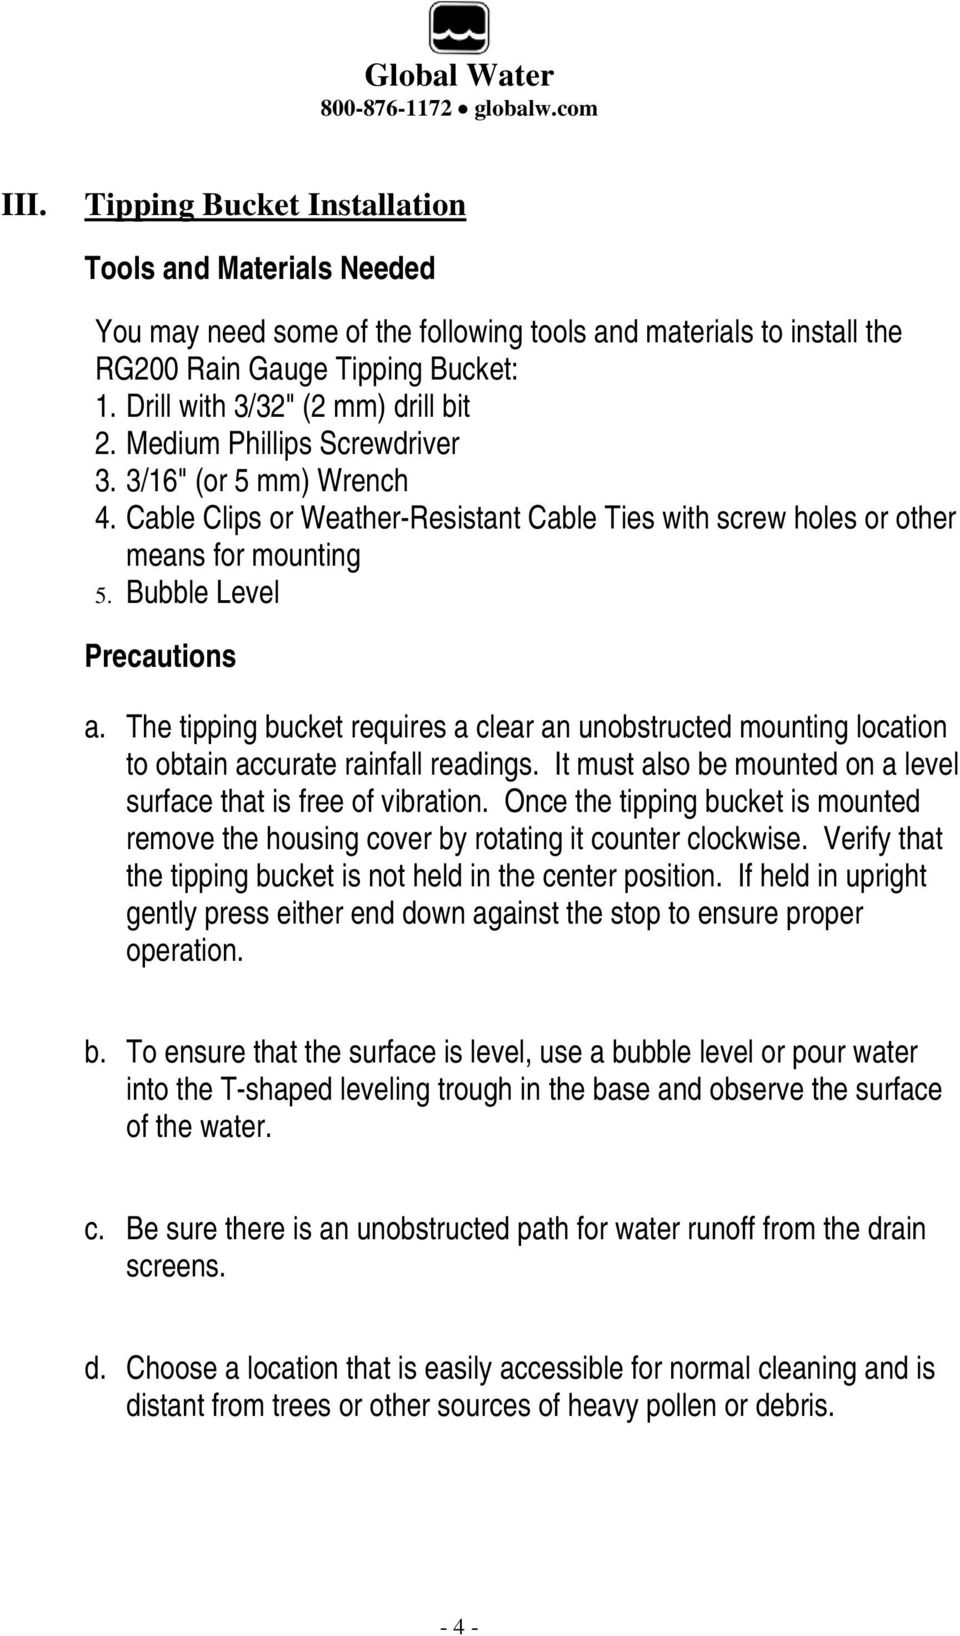 Bubble Level Precautions a. The tipping bucket requires a clear an unobstructed mounting location to obtain accurate rainfall readings.